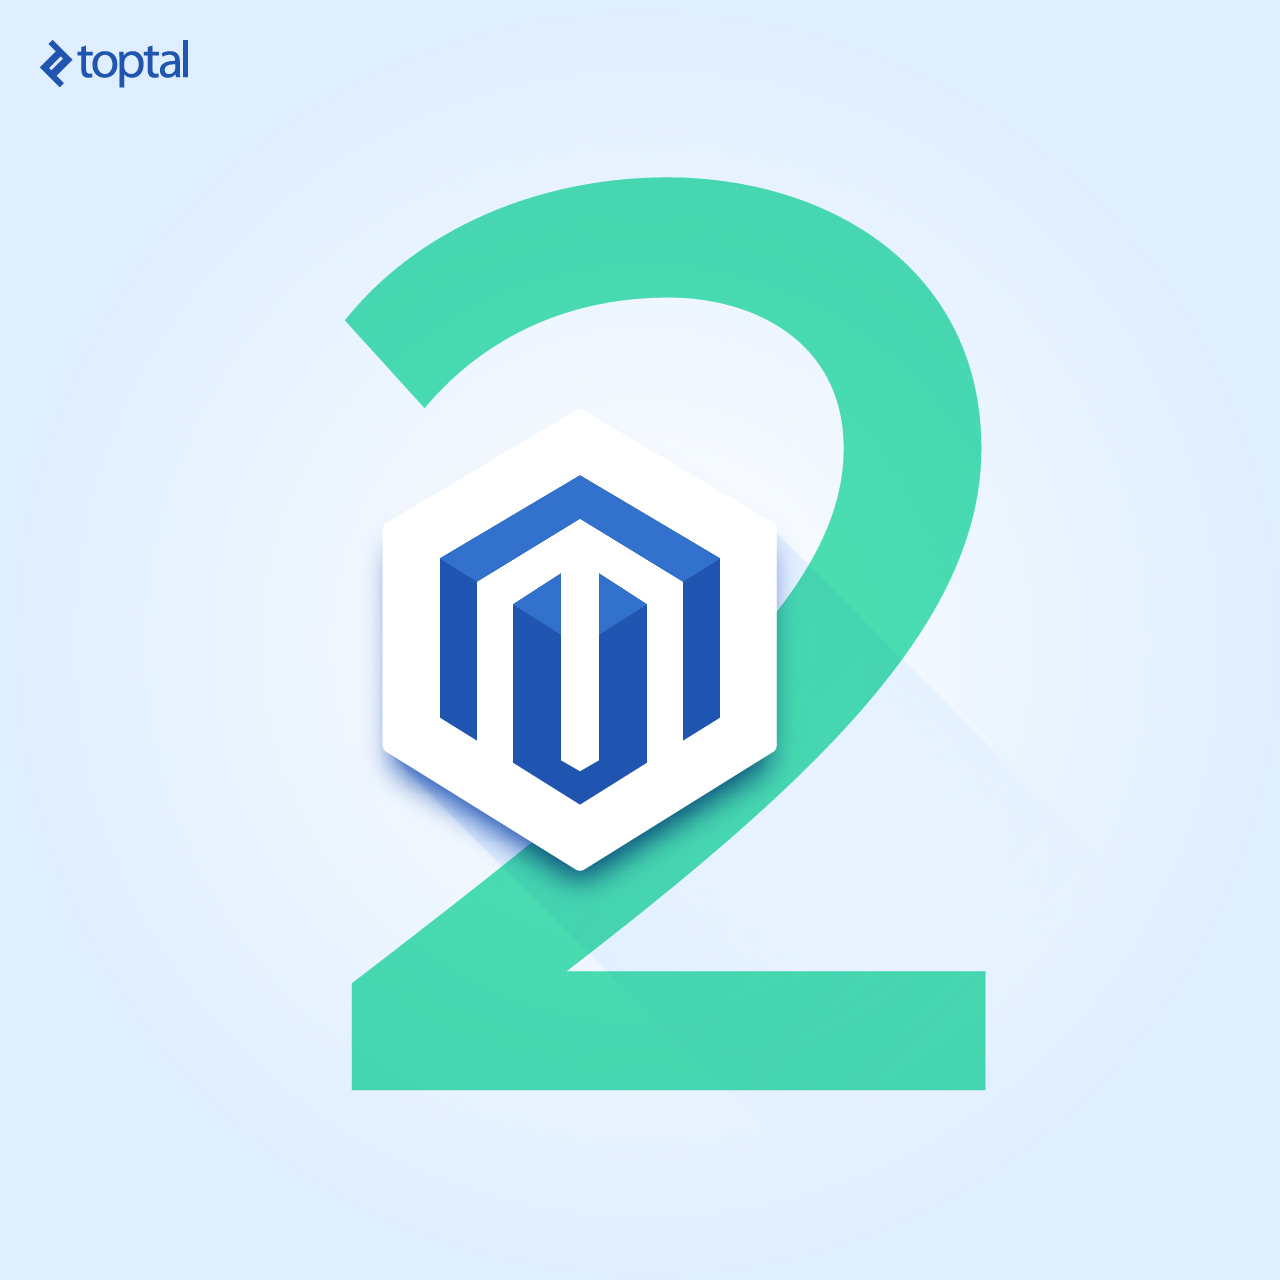 Magento 2, like its predecessor, continues to make waves not only in the world of Magento development services but also in the wider eCommerce context.